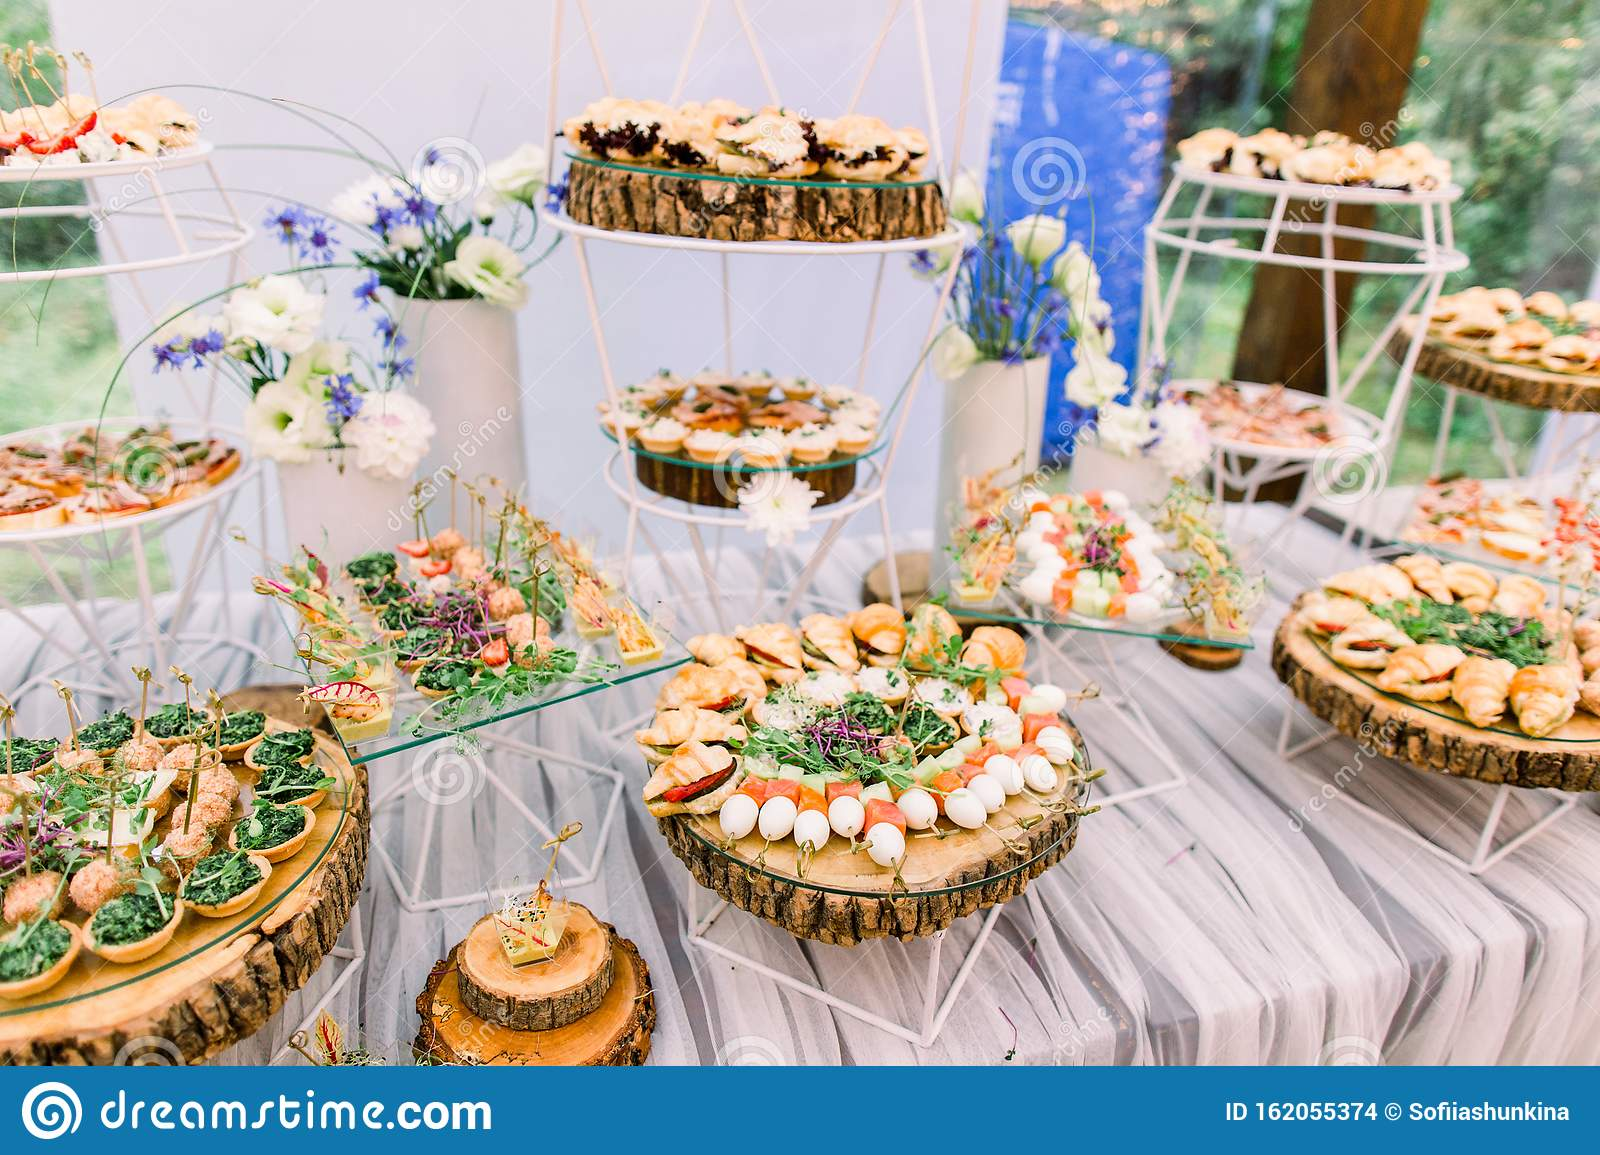 Catering Buffet And Rustic Decor, Outdoor Wedding Party ...